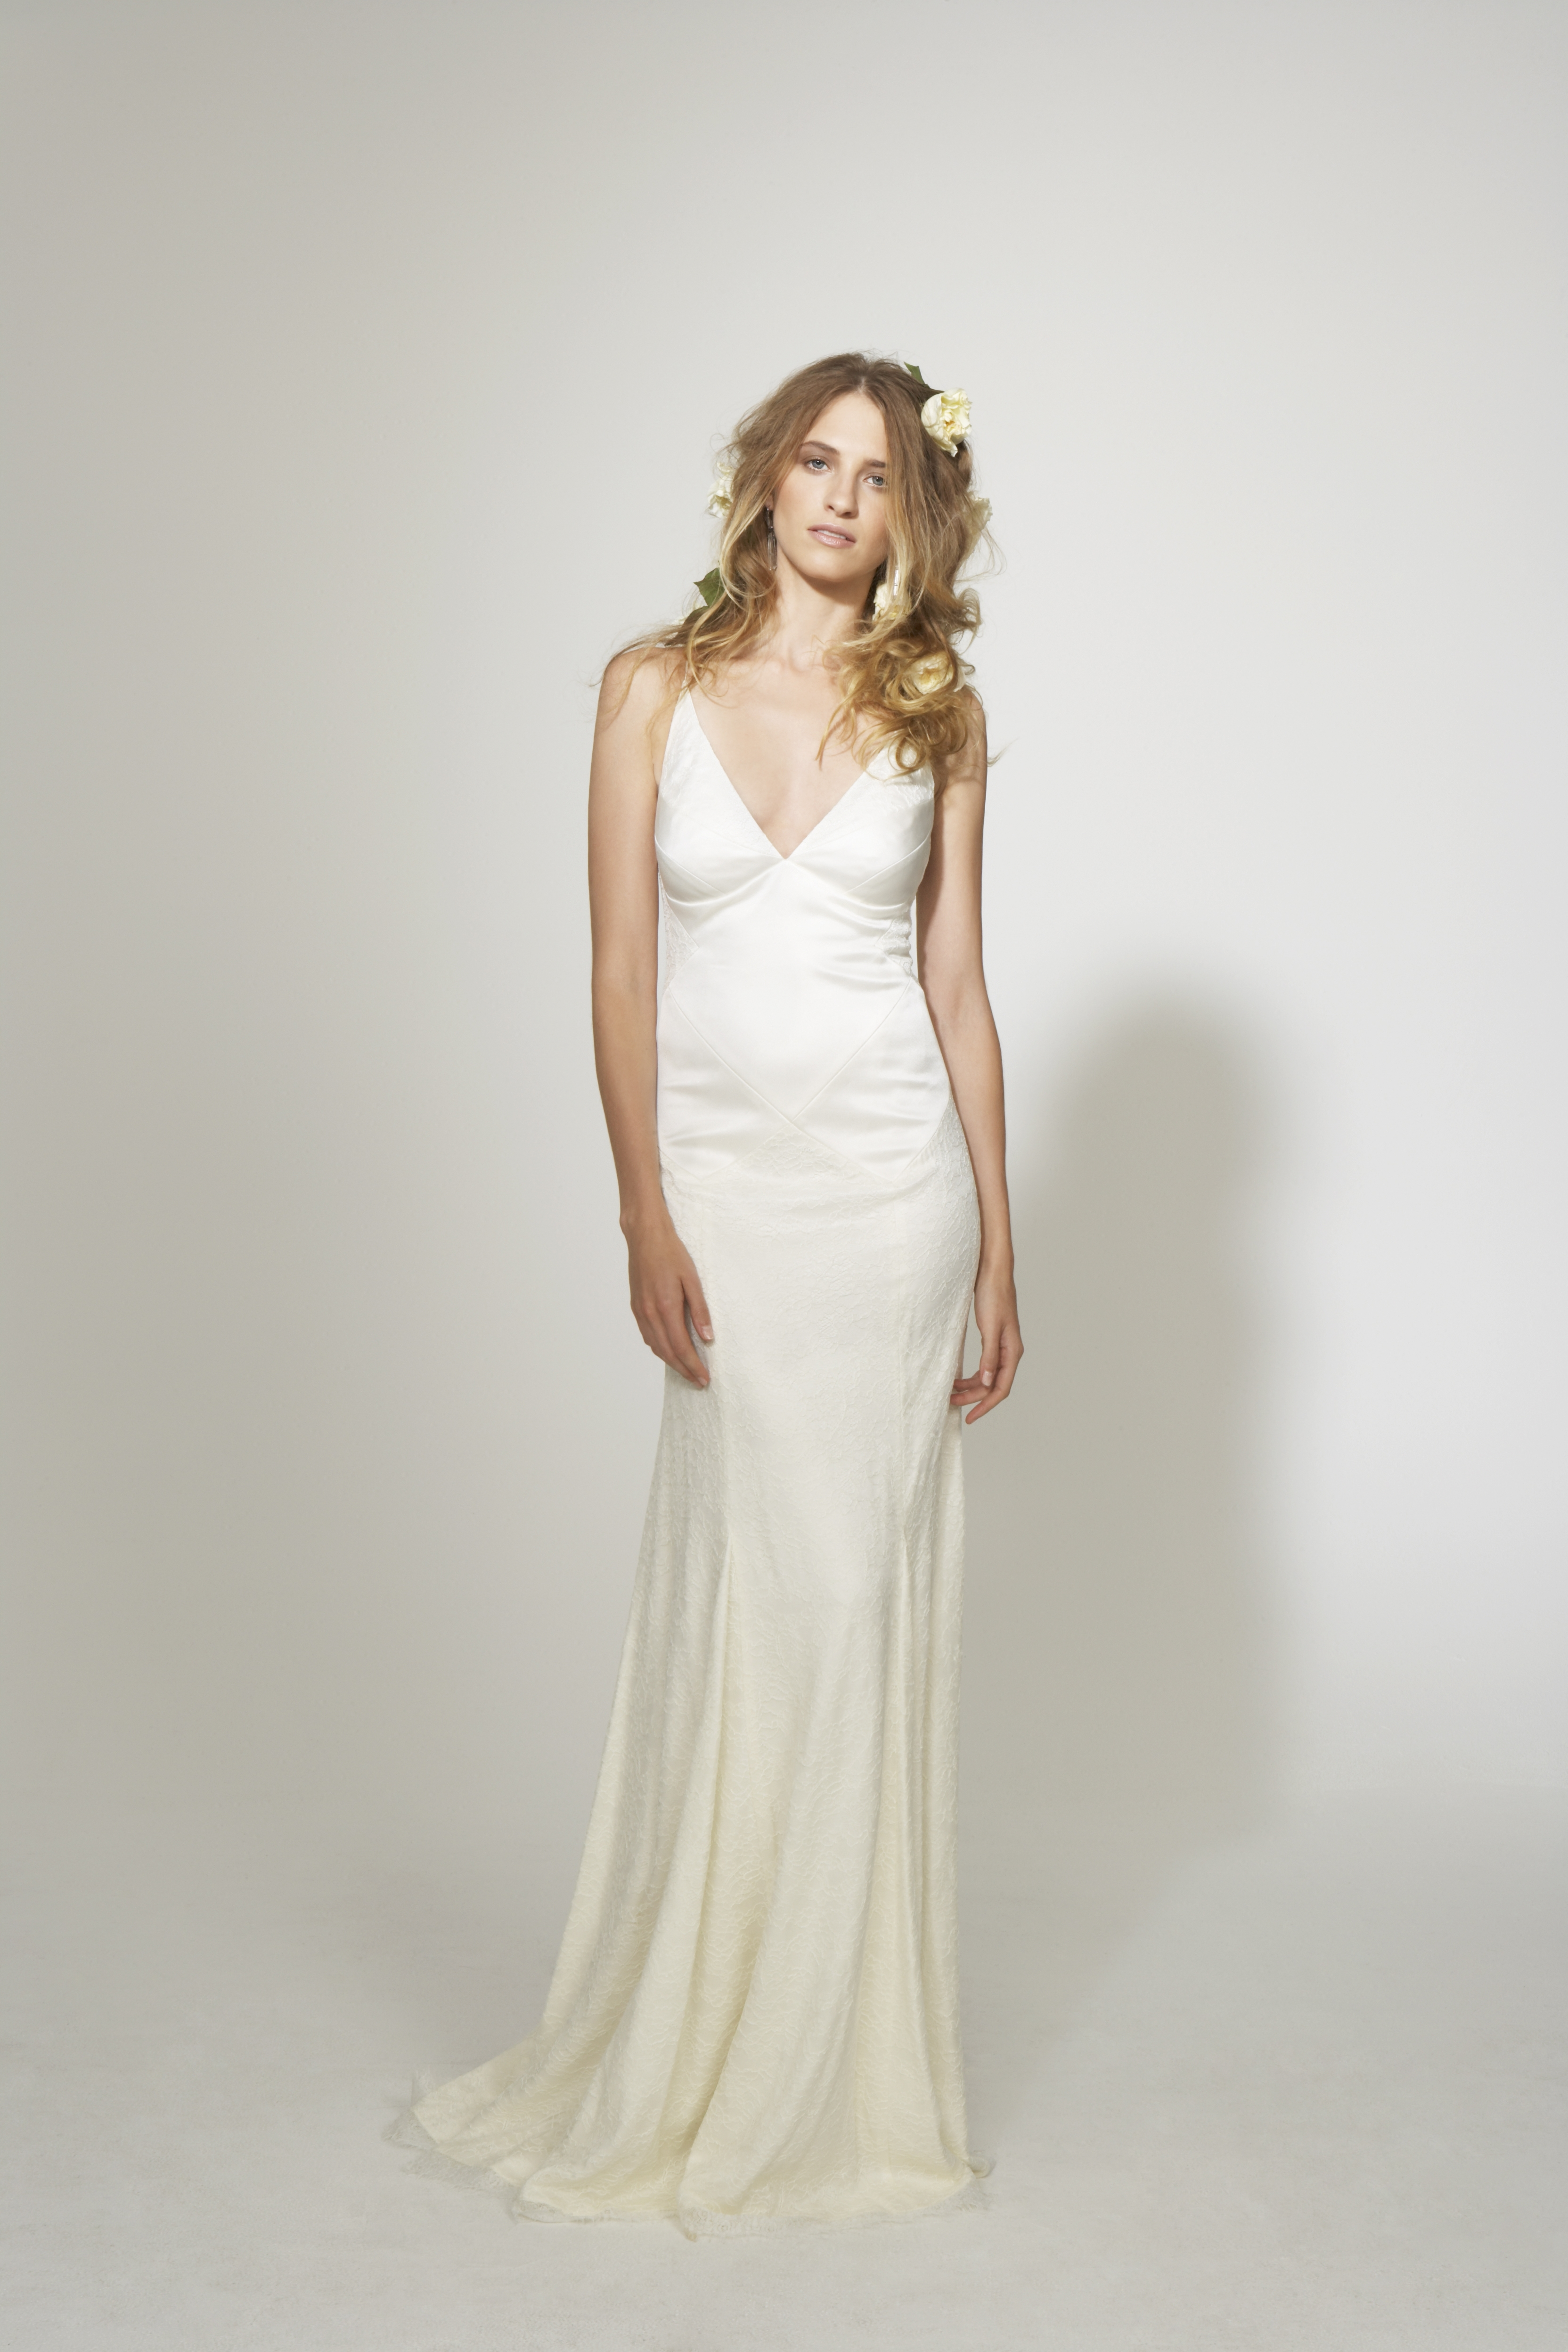 Nicole-miller-simple-sleek-v-neck-white-wedding-dress.original